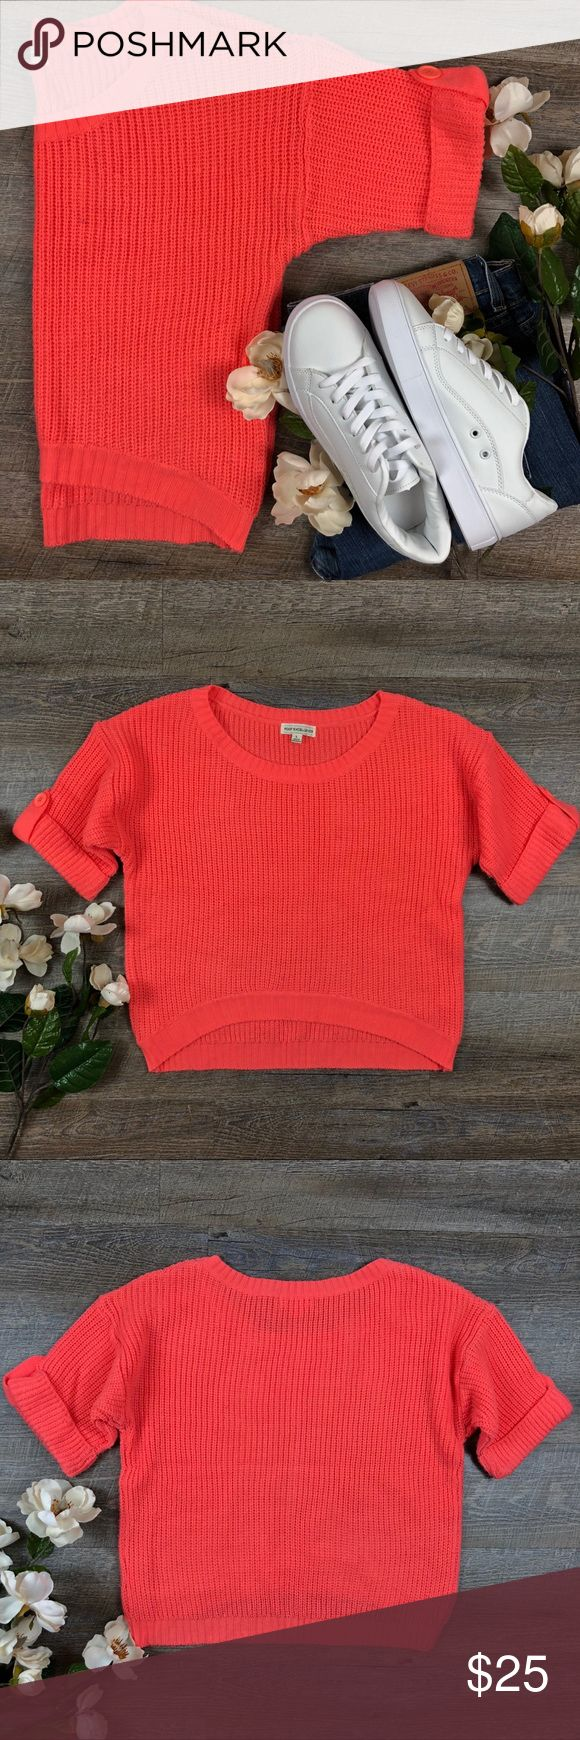 Coral Poof Excellent Sweater Adorable short sleeved coral Poof Excellence sweater! In great condition. 100% acrylic. Size L. A-12 Poof Excellence Sweaters